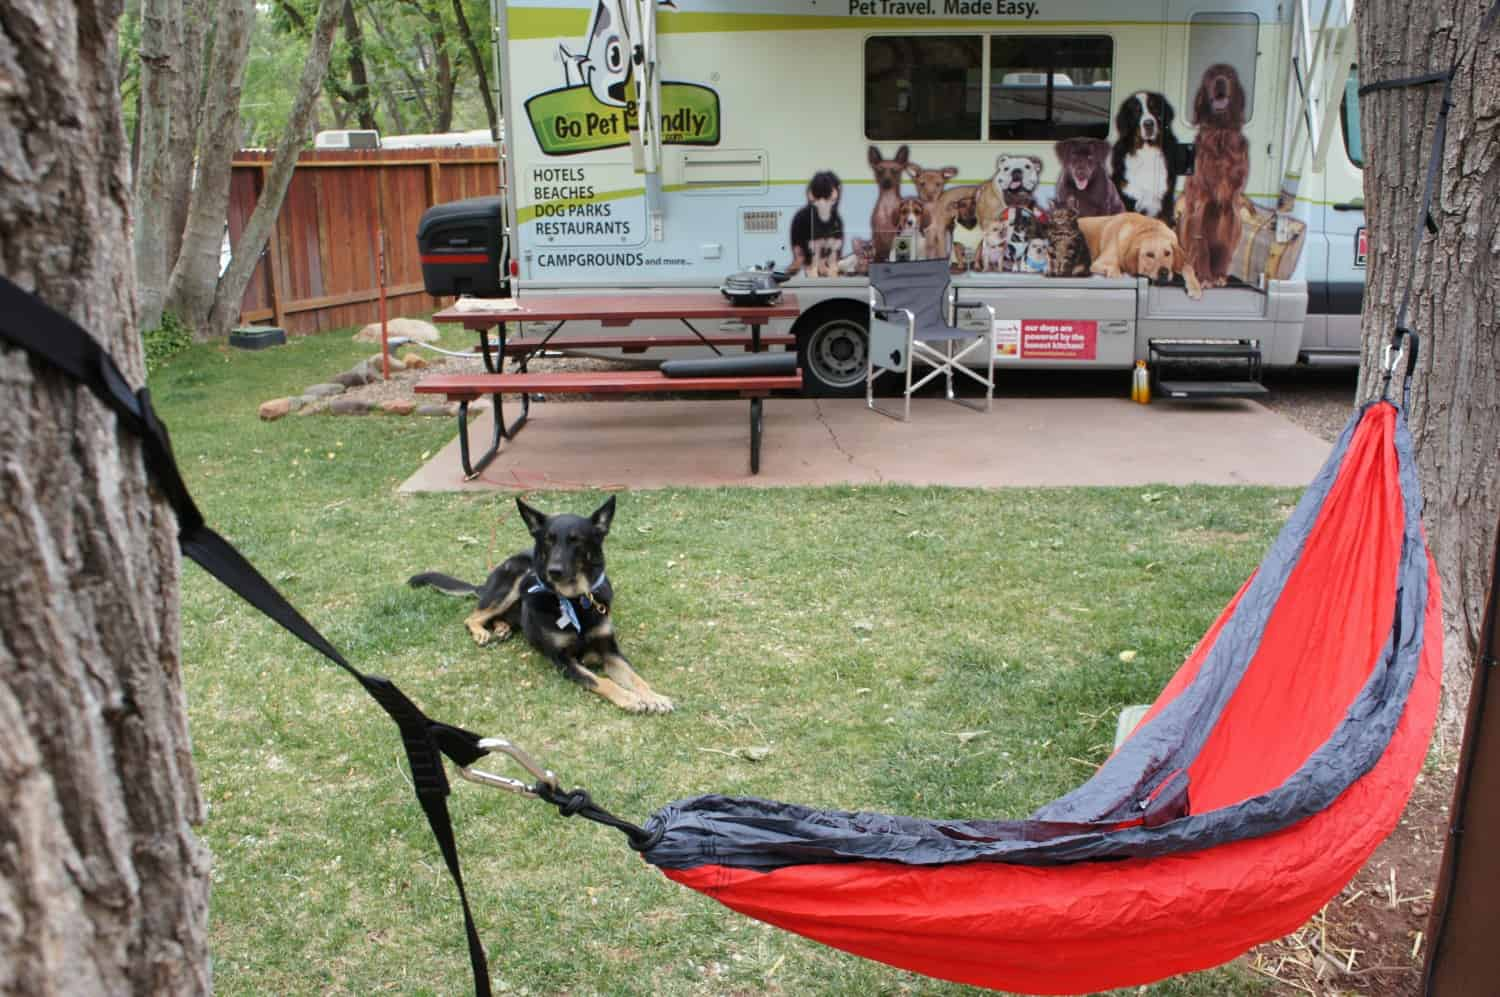 Pet Friendly RV rental at a campsite with a dog and hammock